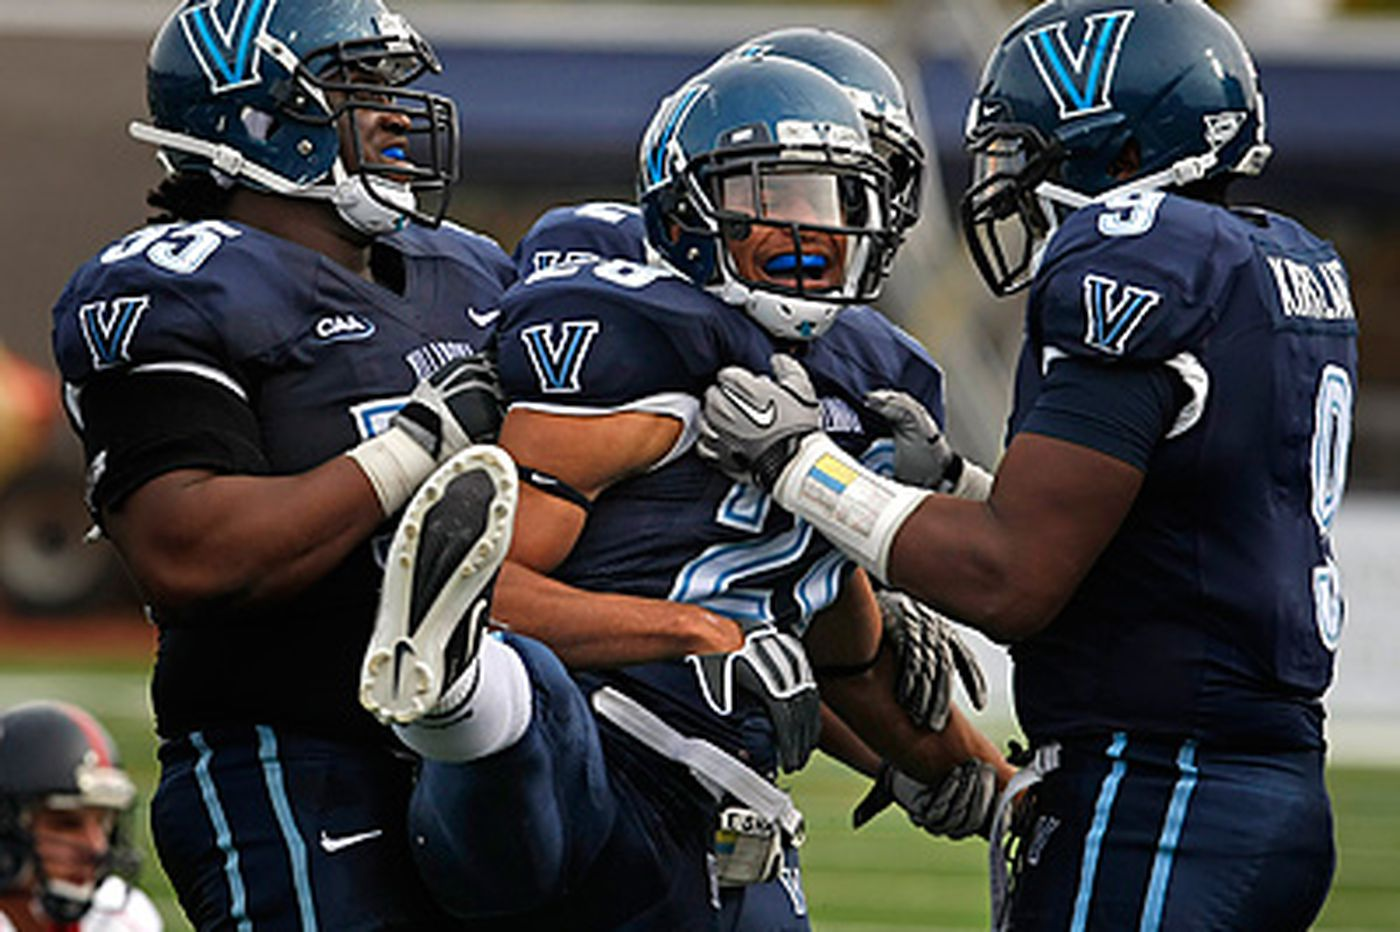 For 'Nova, football move would carry real costs